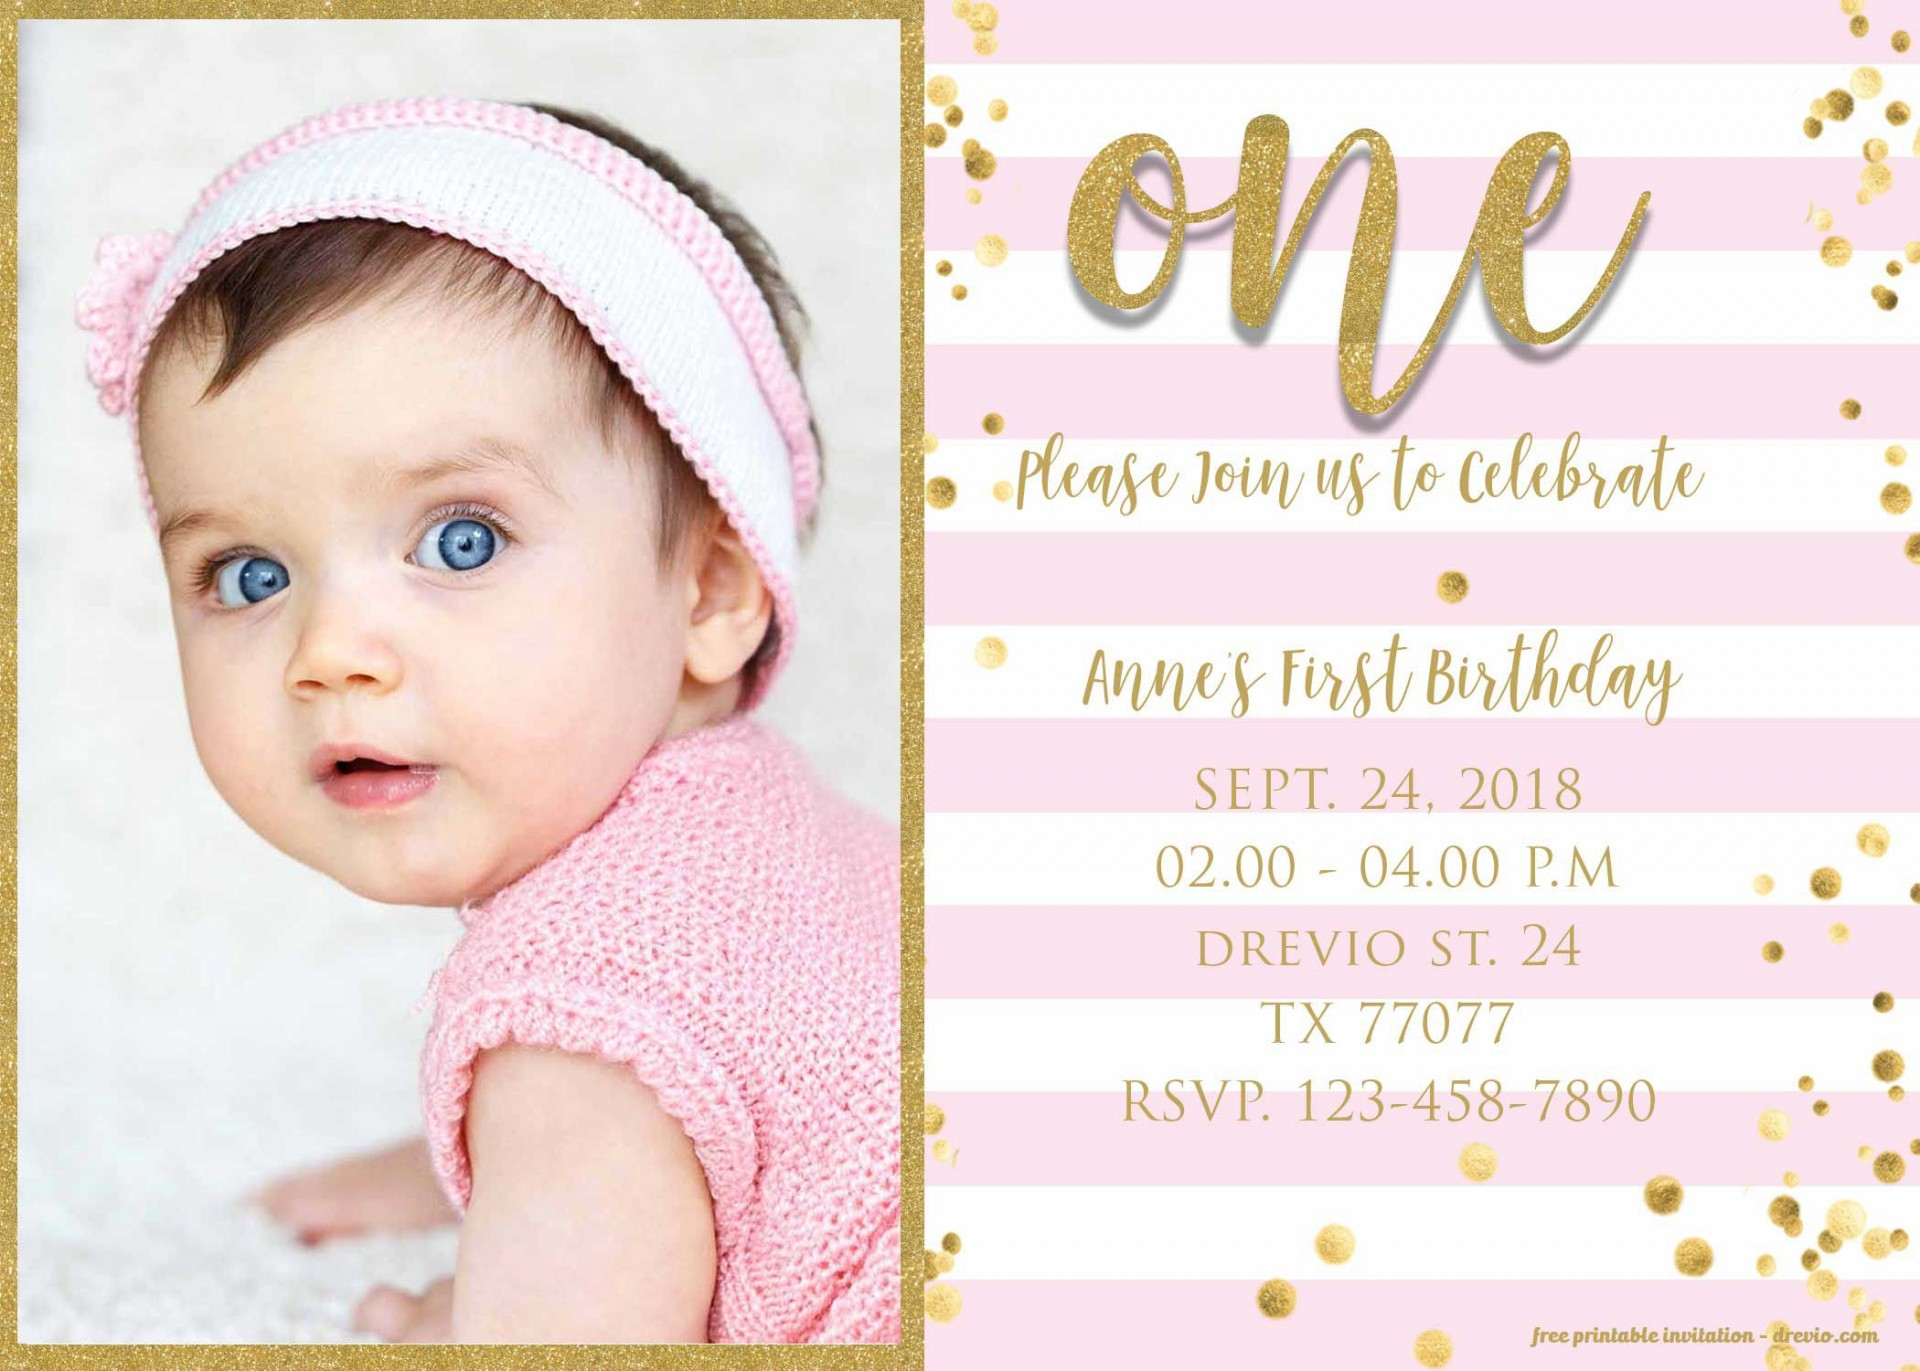 009 Impressive Free 1st Birthday Invitation Template For Word Highest Clarity 1920